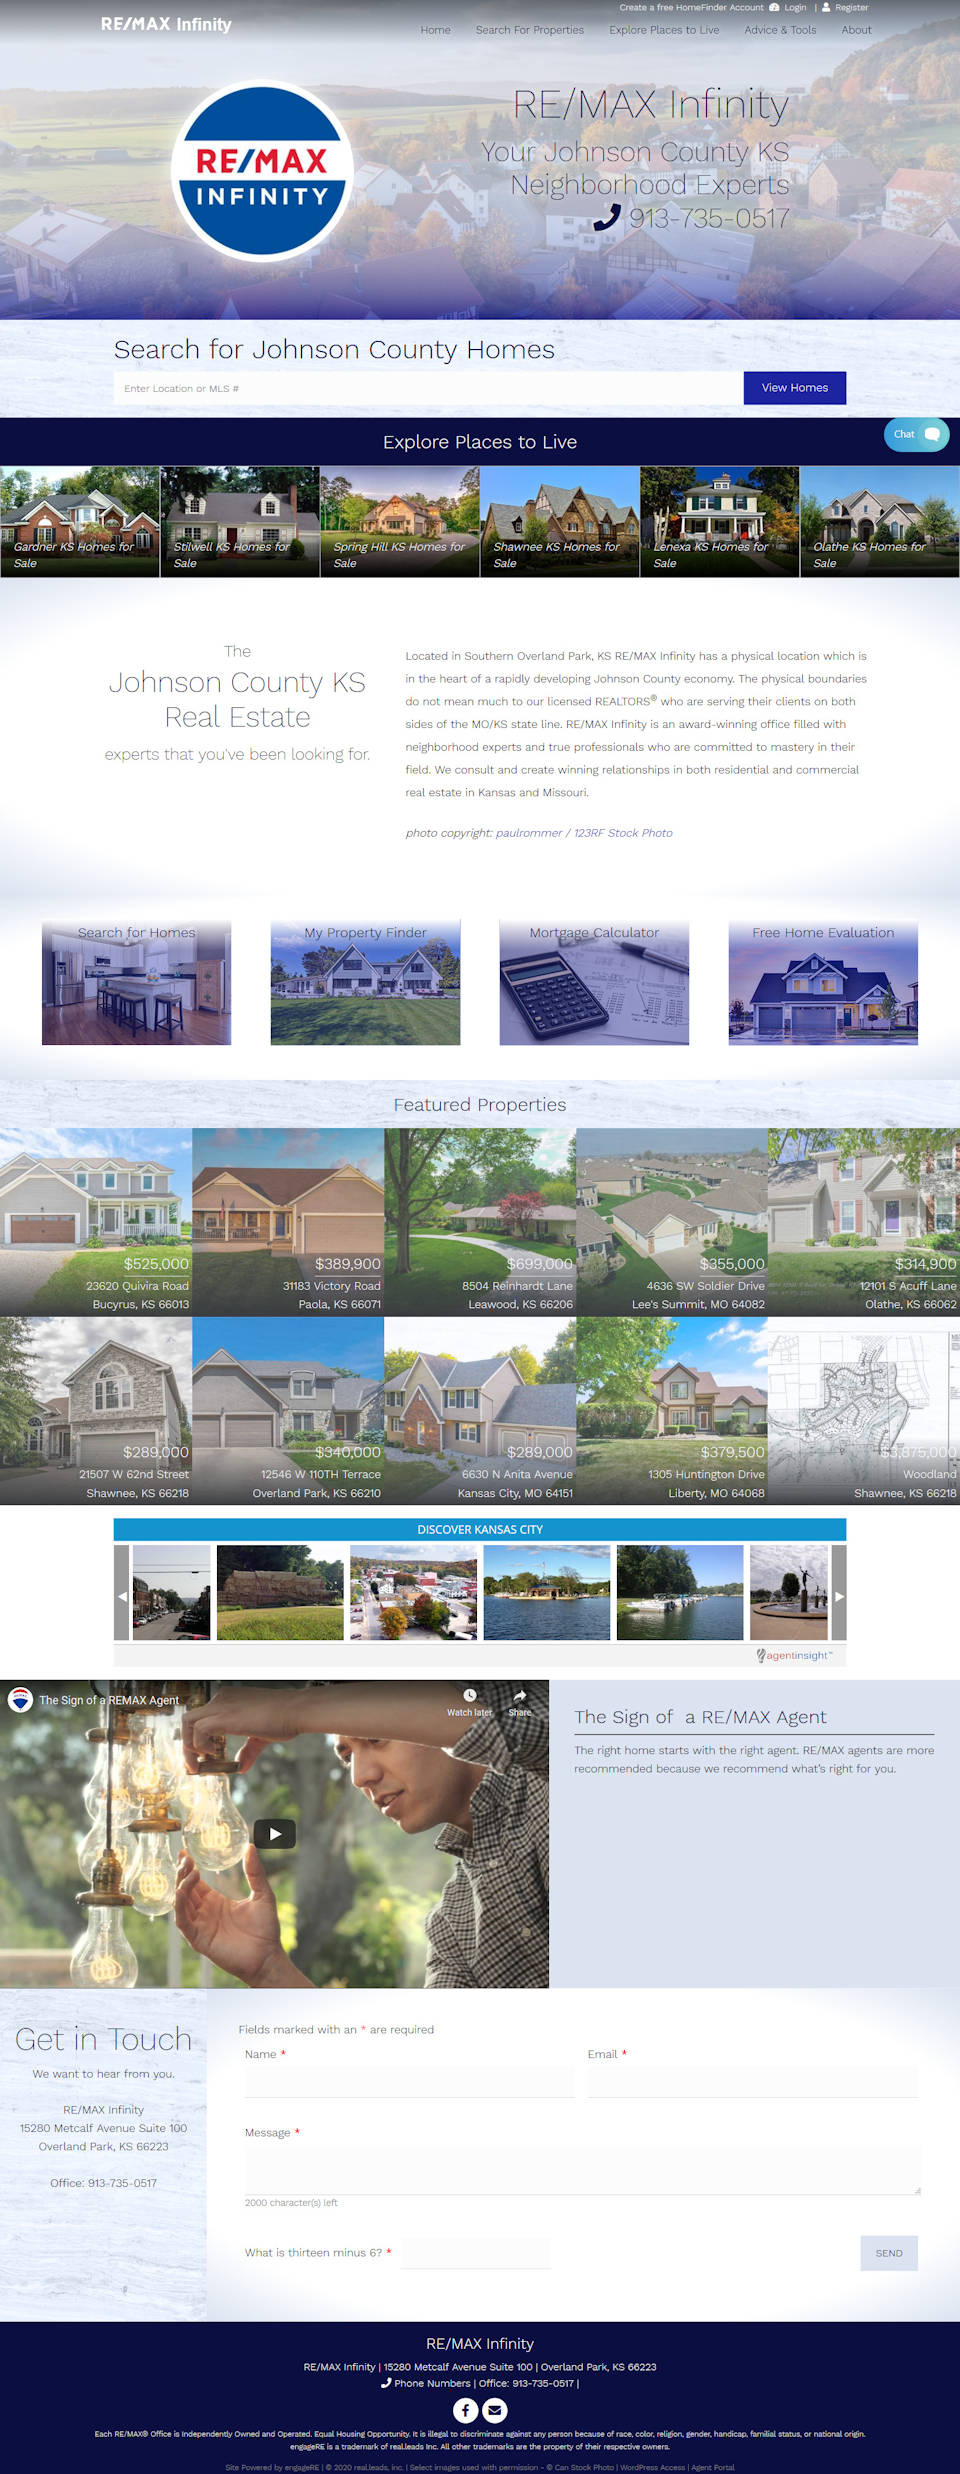 RE/MAX Infinity full screenshot